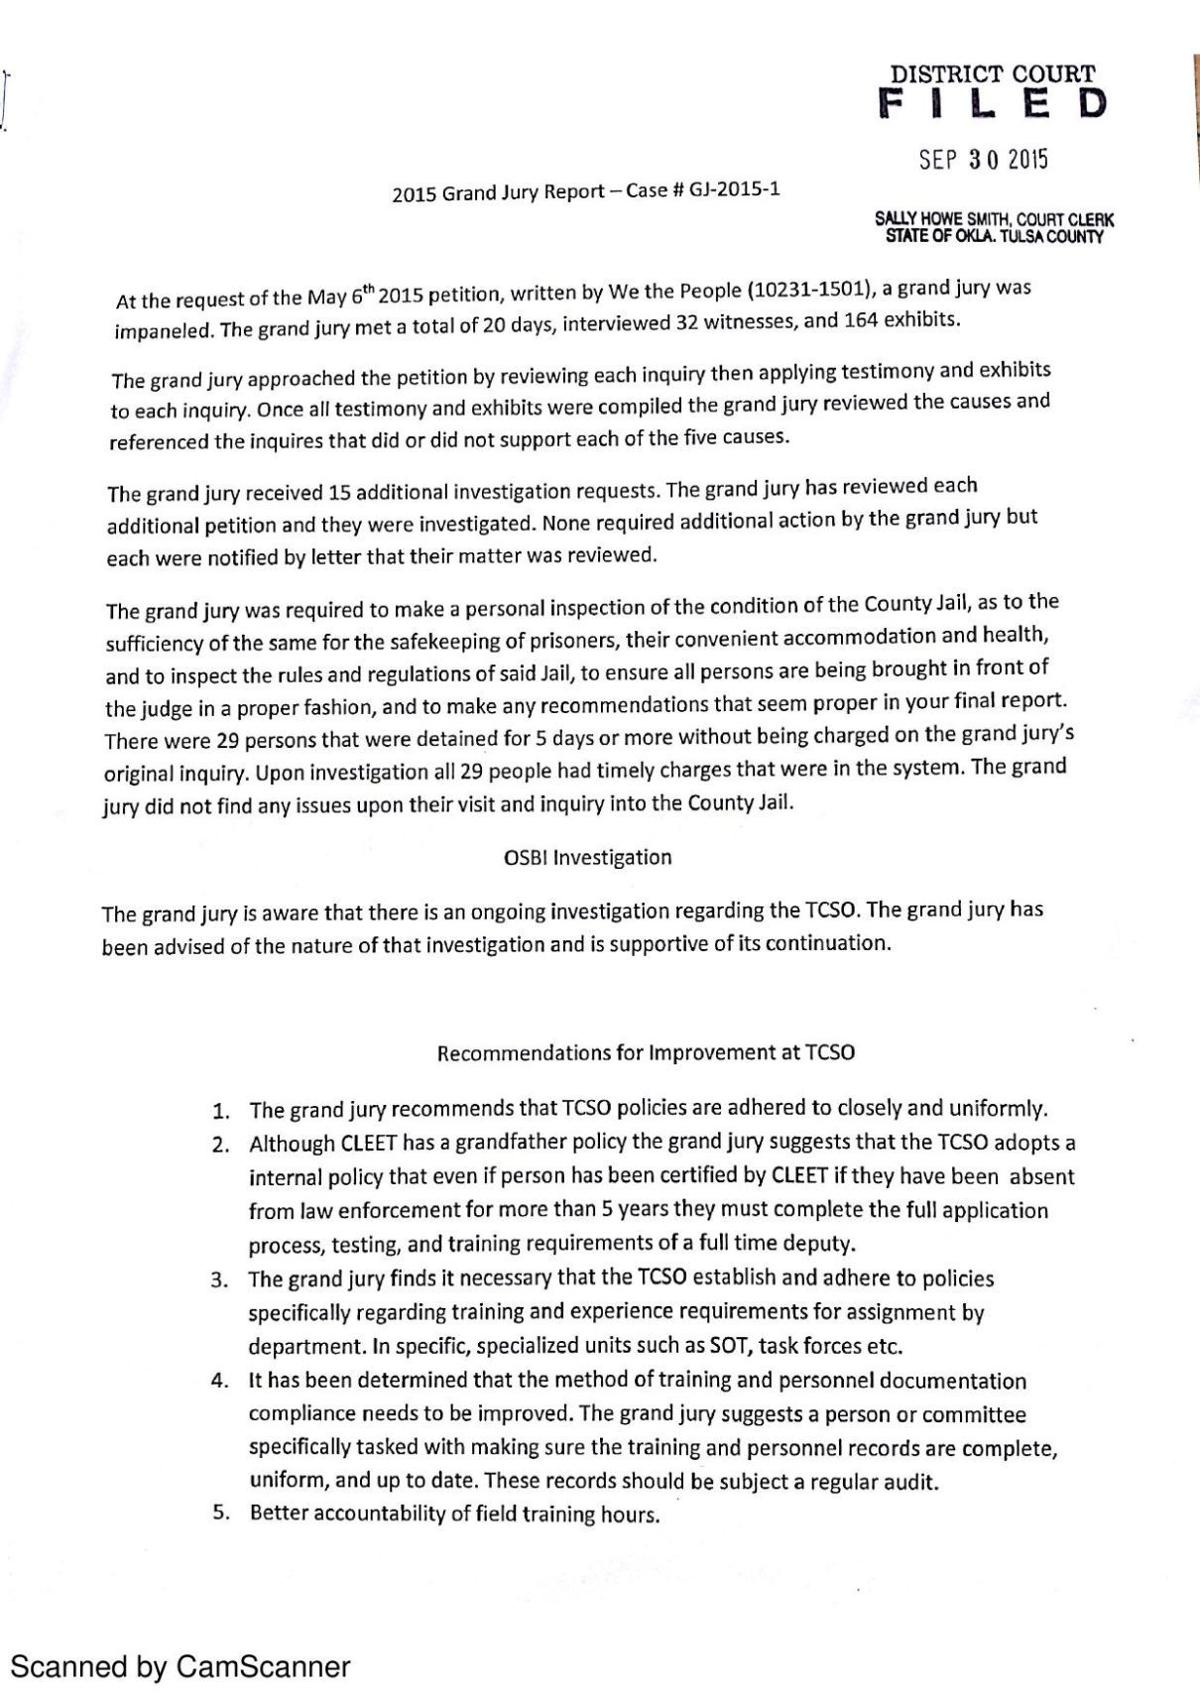 PDF: Grand jury recommendations for TCSO